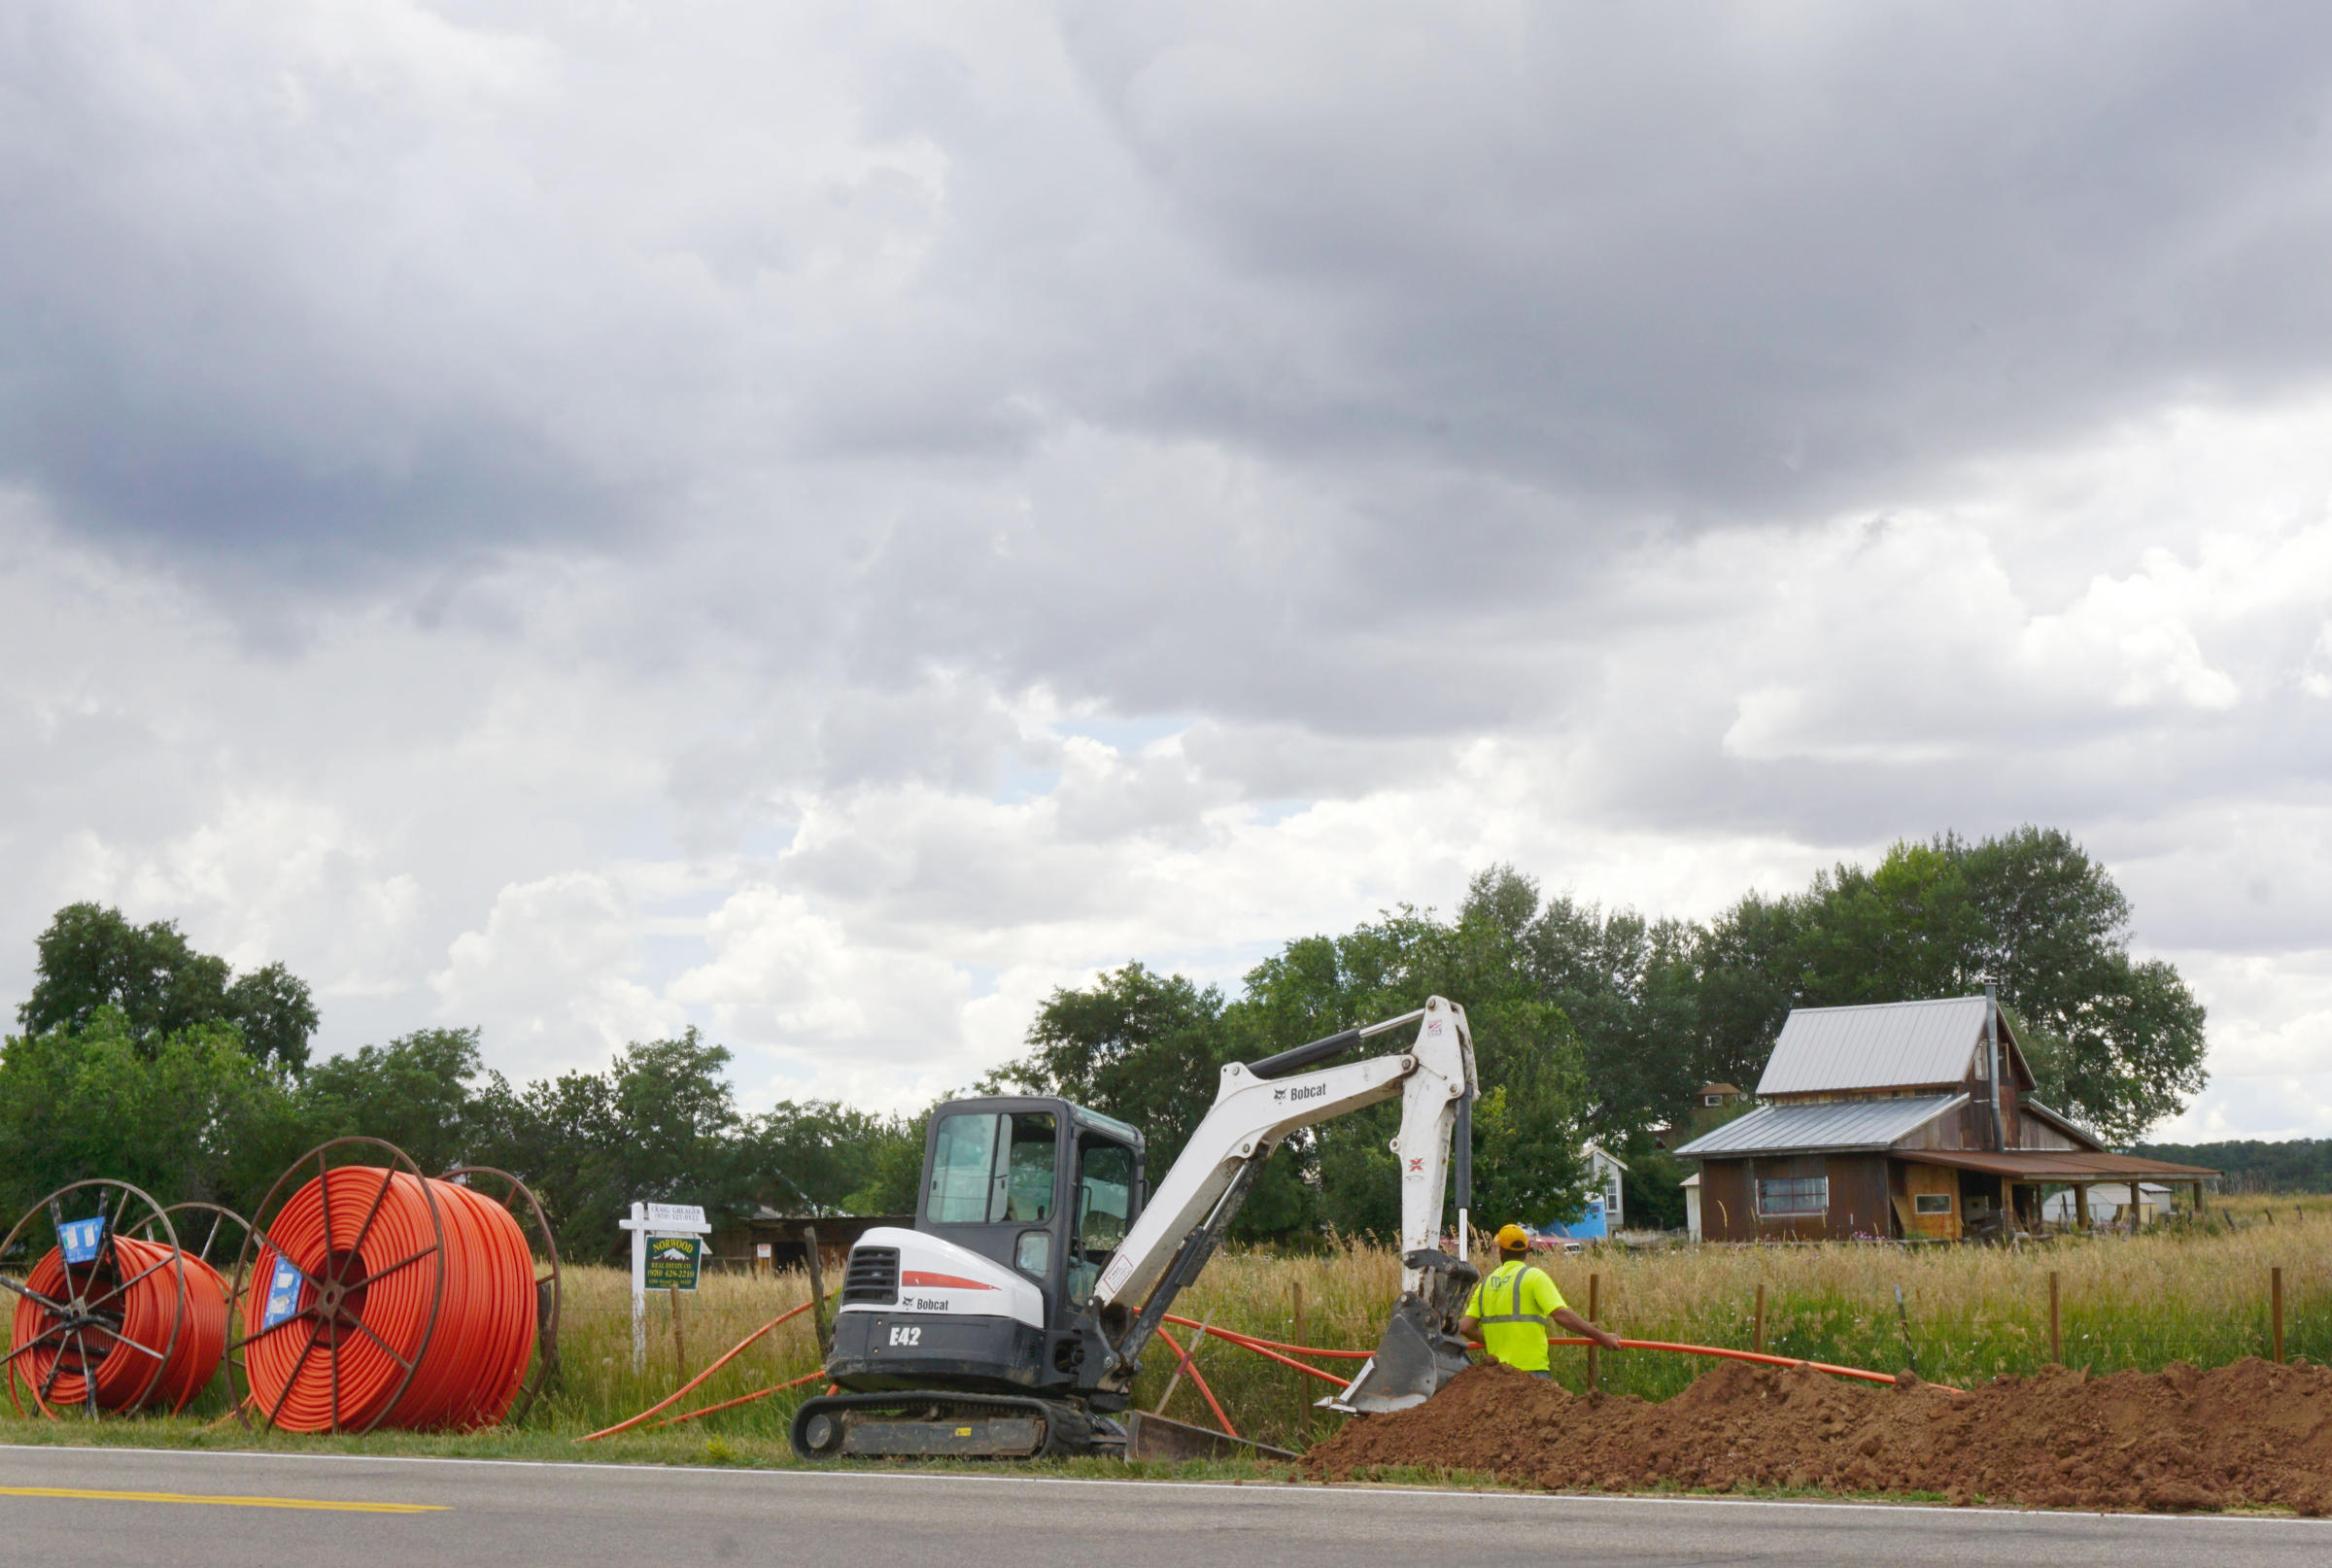 Rural Coloradans Have Done Strange Things To Get Internet. For Some, Those Days Are Almost Over